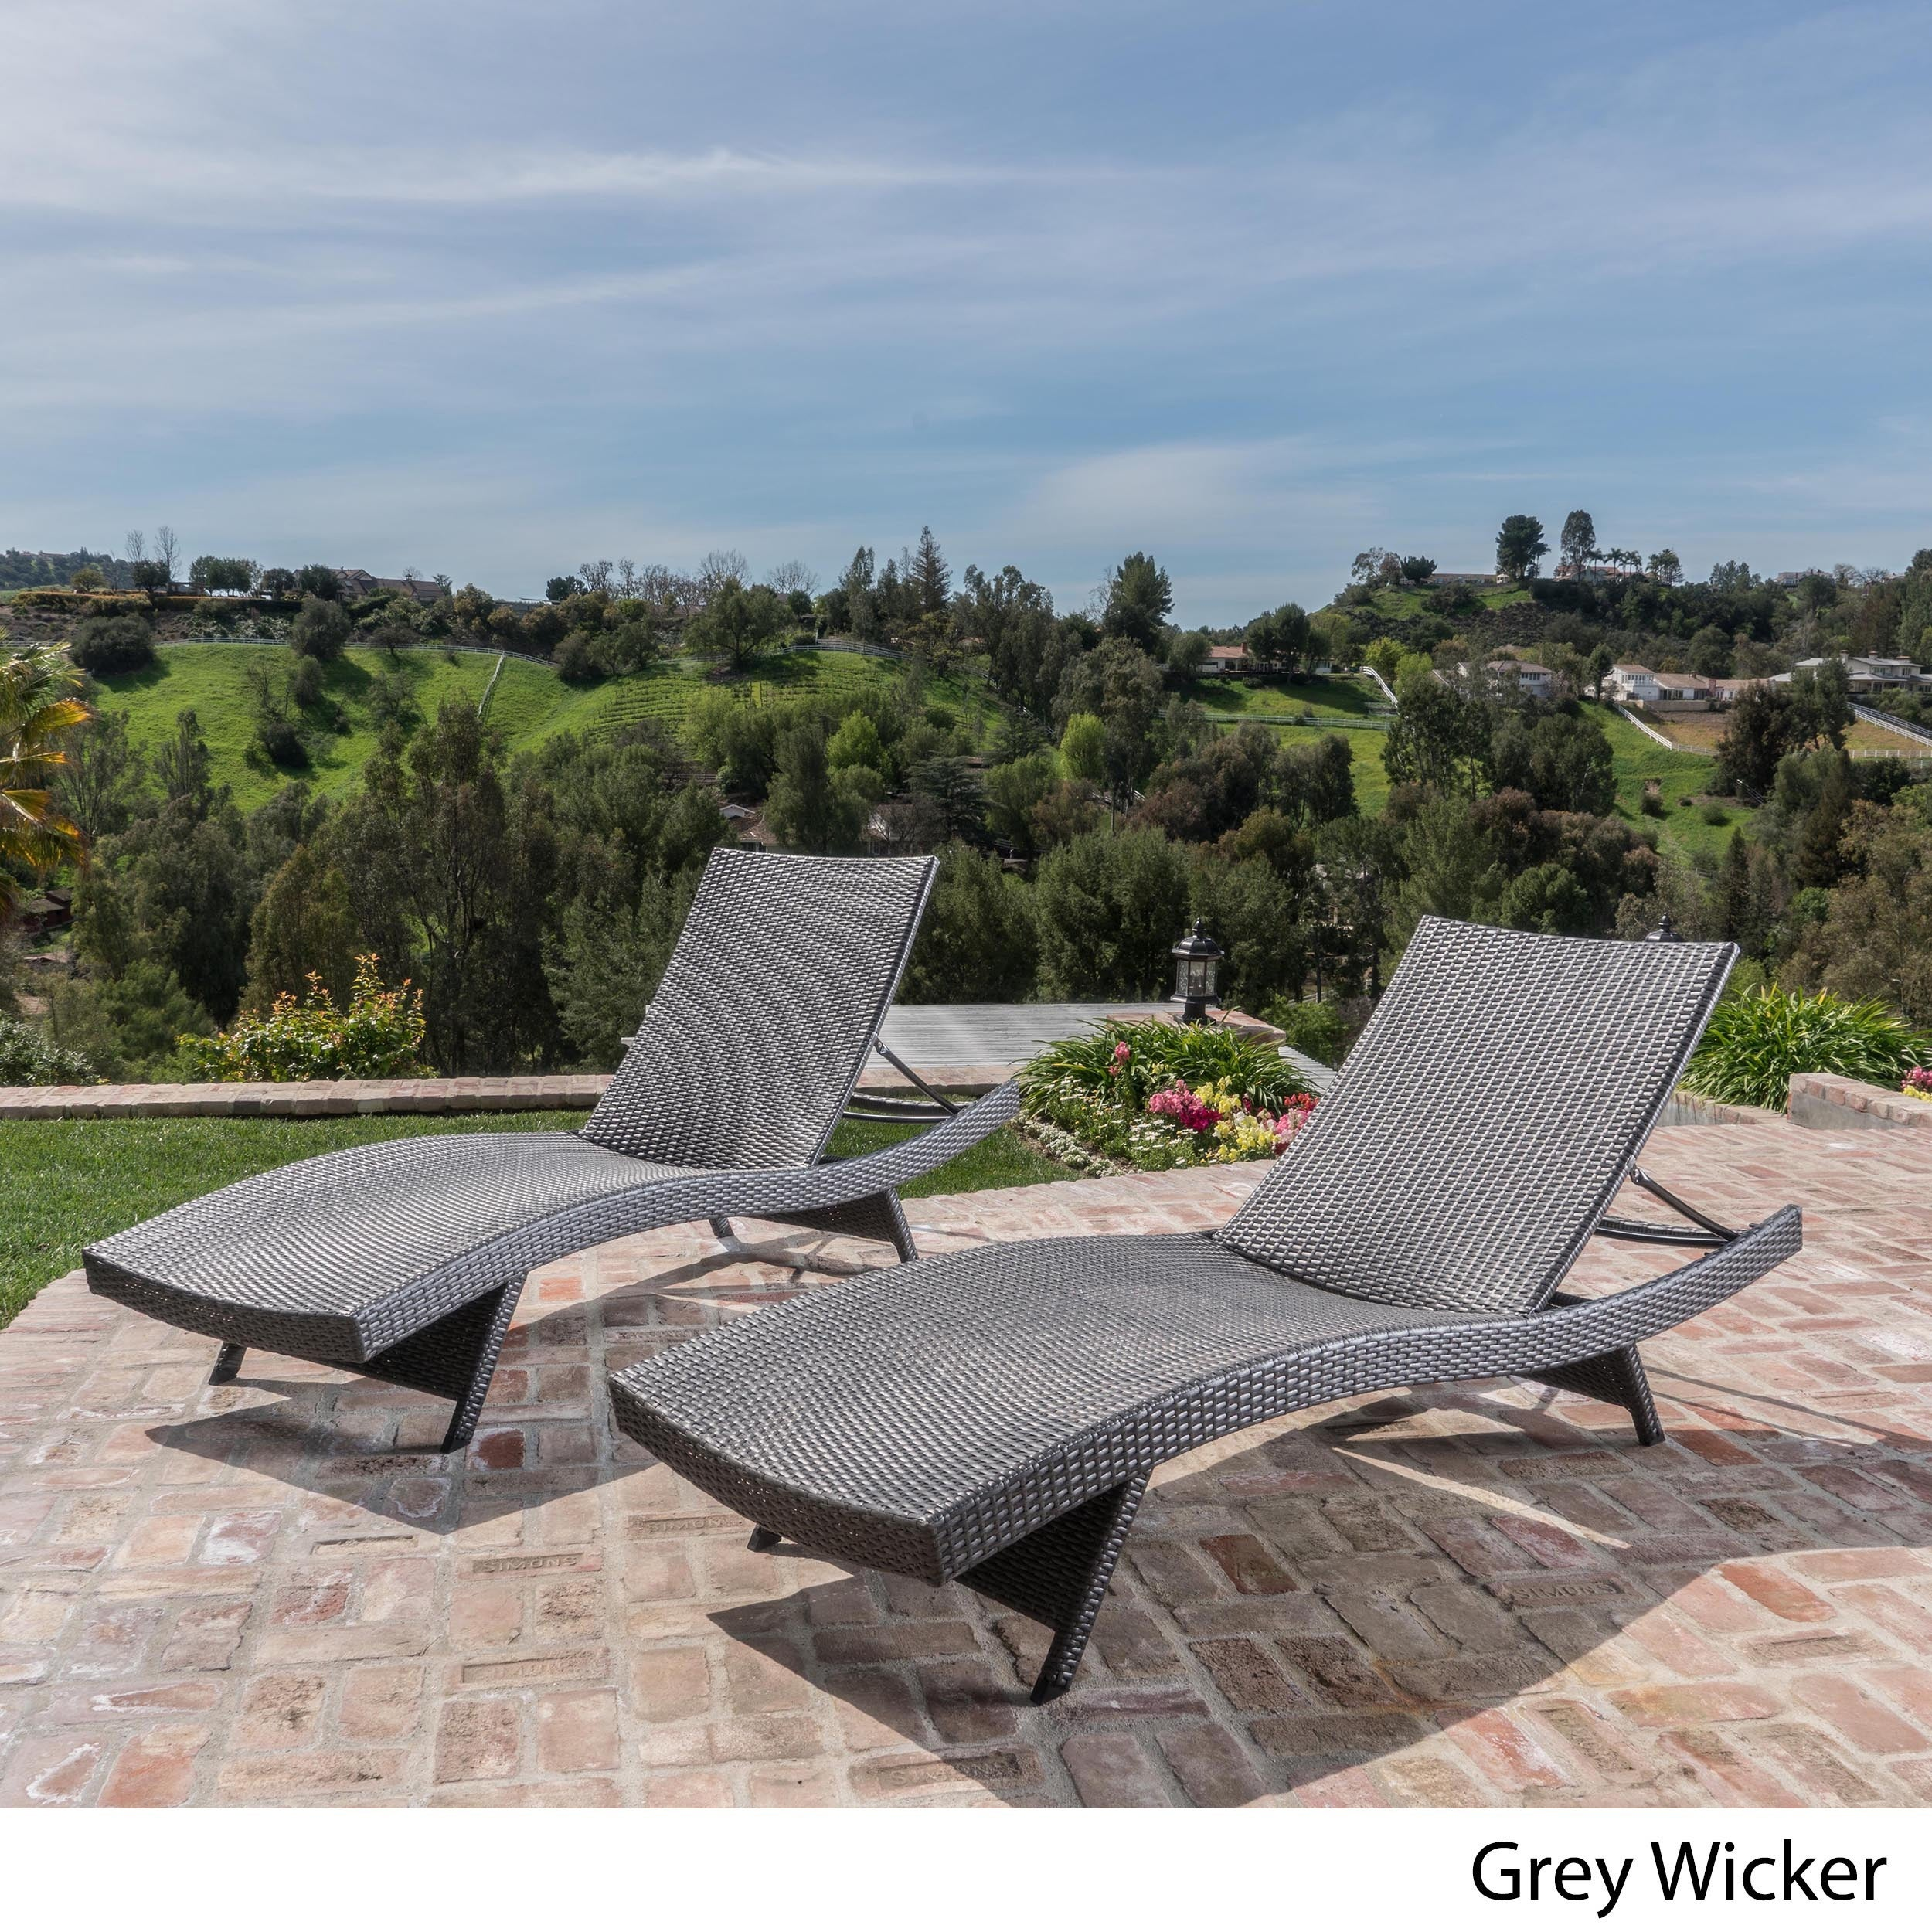 Toscana Outdoor Wicker Lounge Chairs by Christopher Knigh...